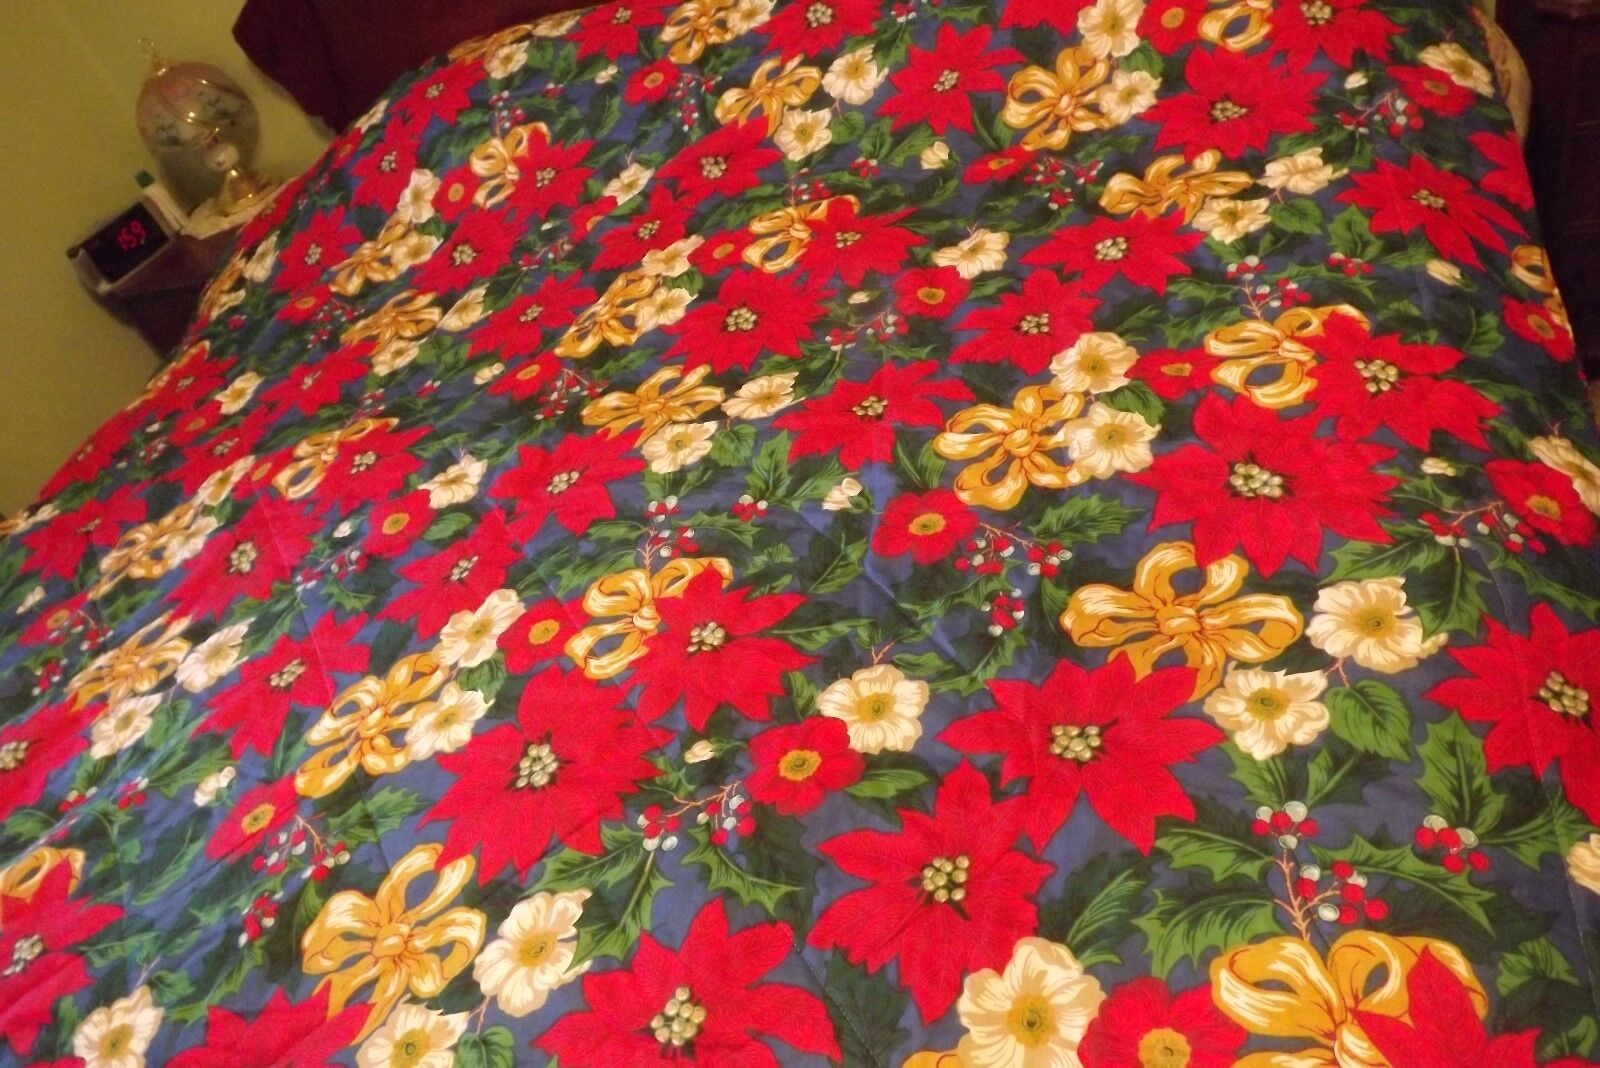 Christmas Queen Bedspread Poinsettia Holly Holiday With Sham 87X80